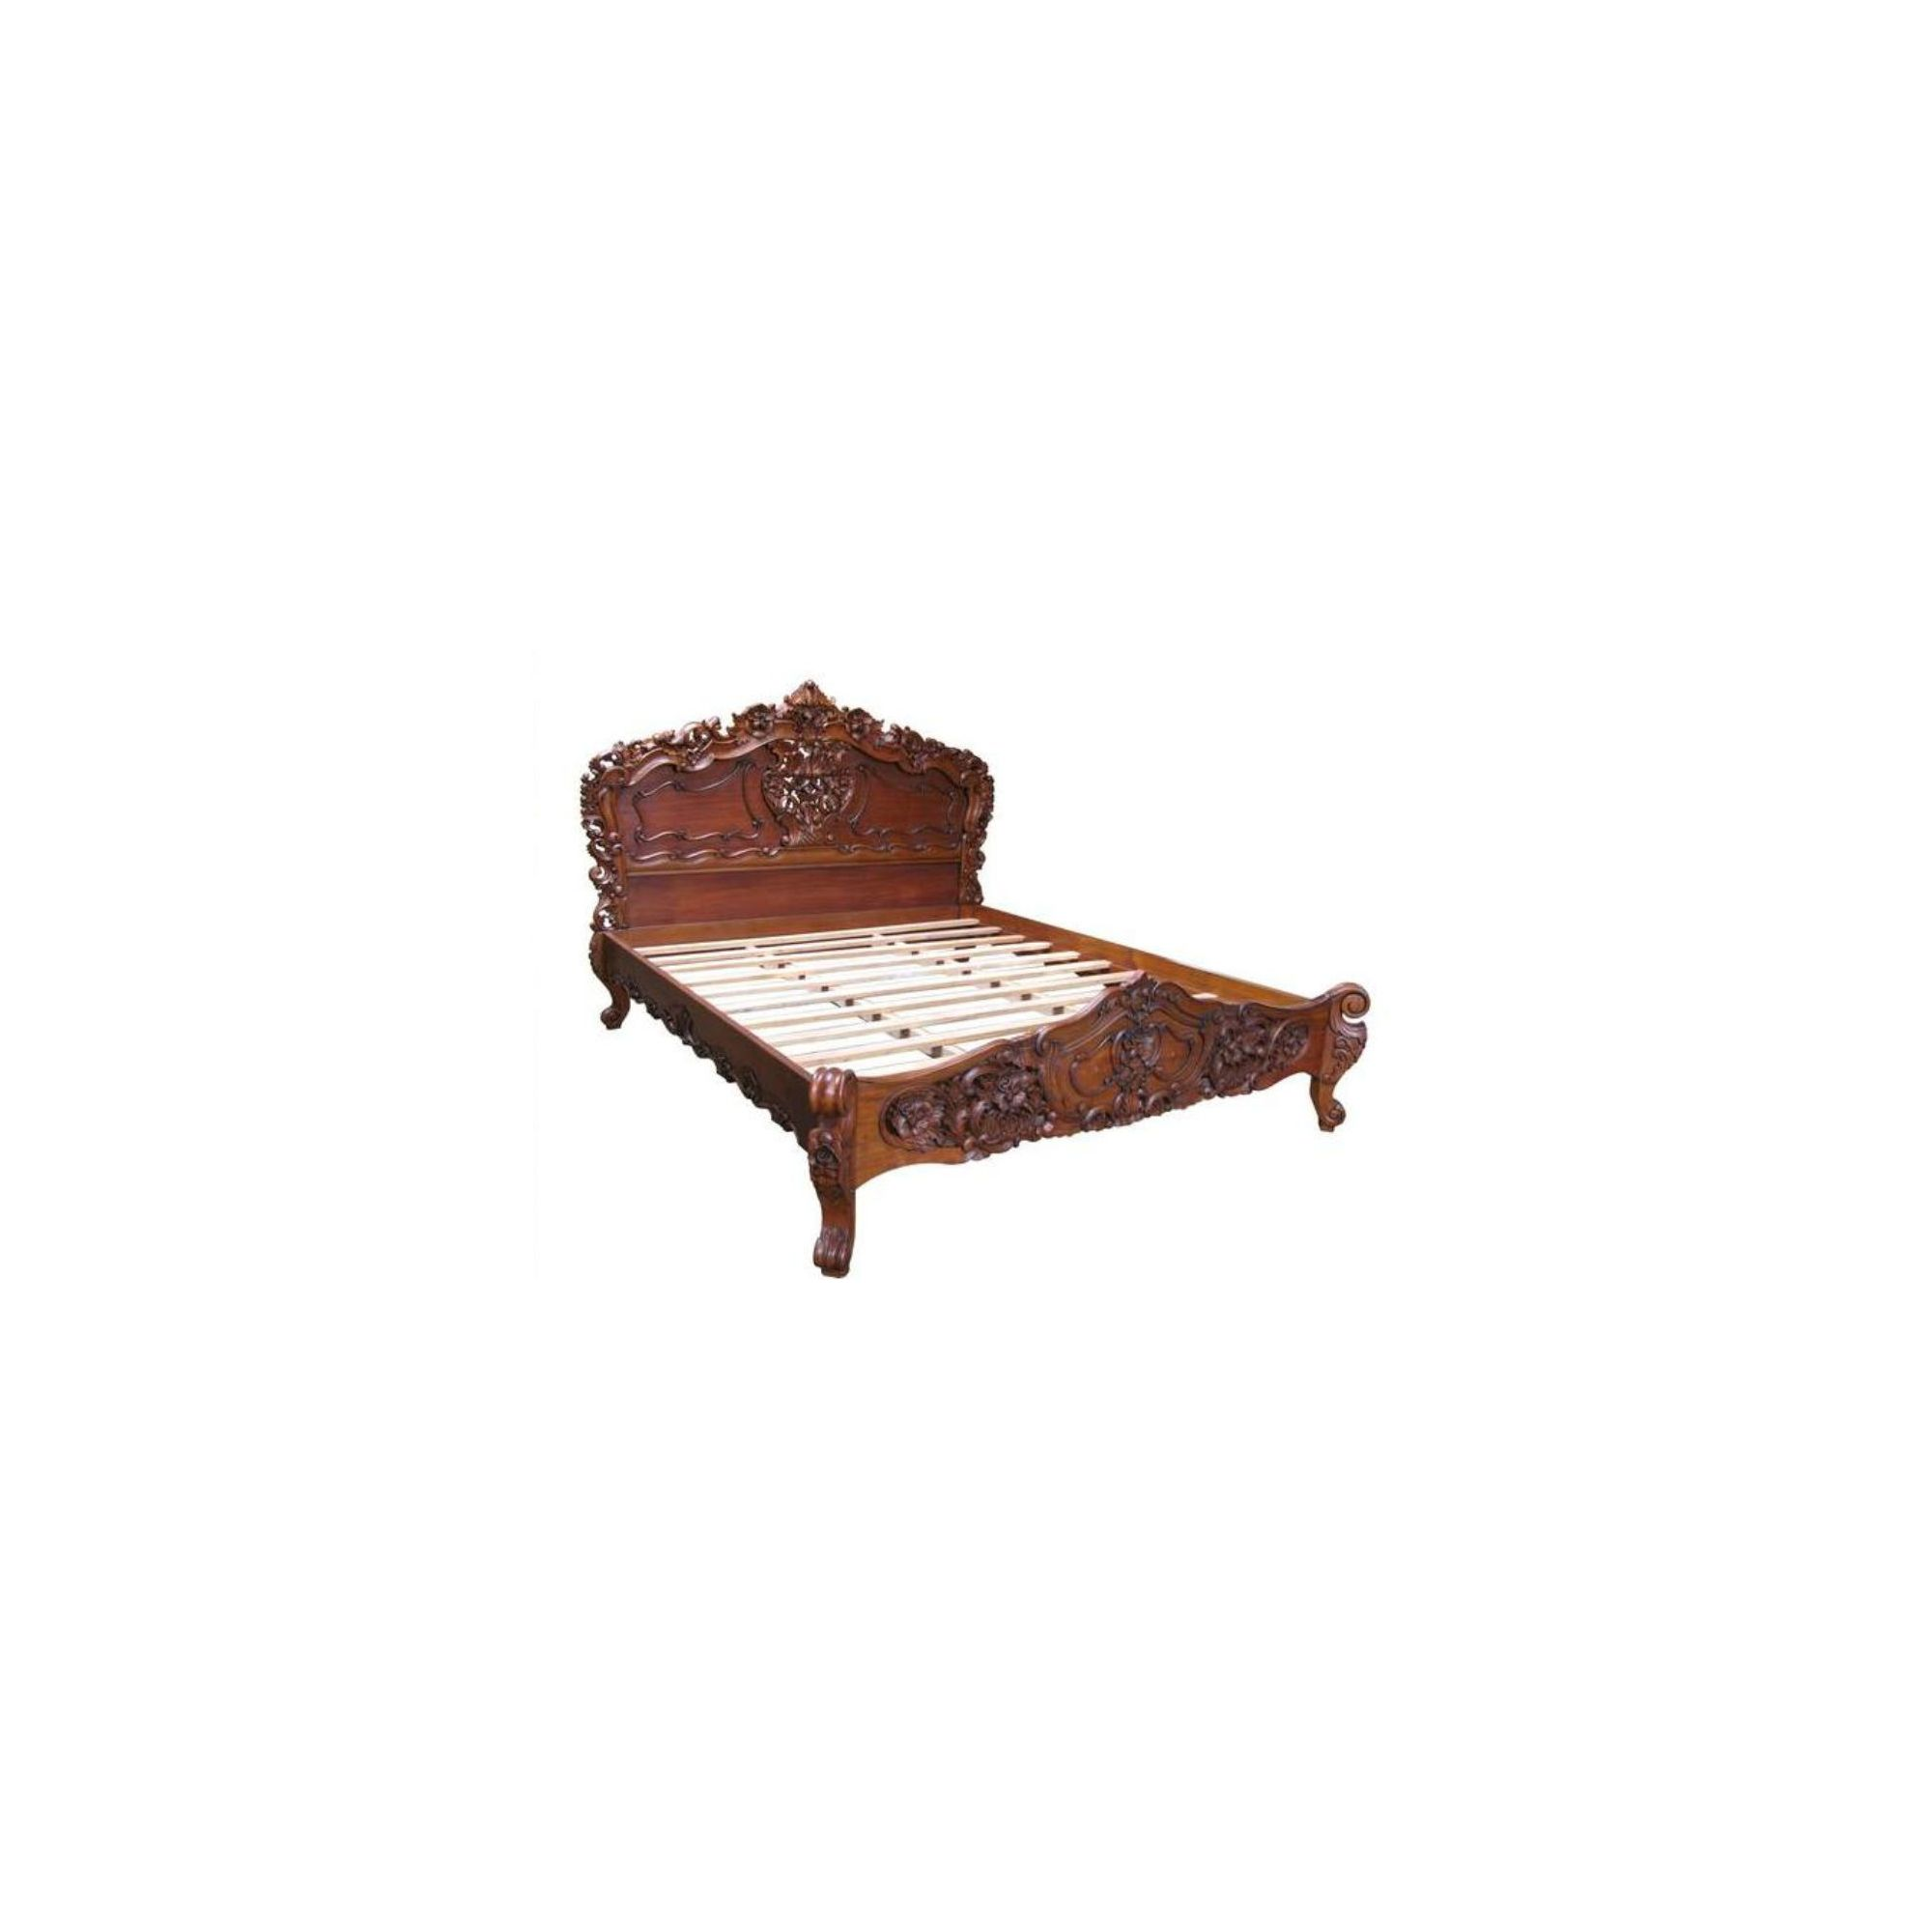 Lock stock and barrel Mahogany Carved Rococo Bed in Mahogany - Wax Polish - King at Tesco Direct